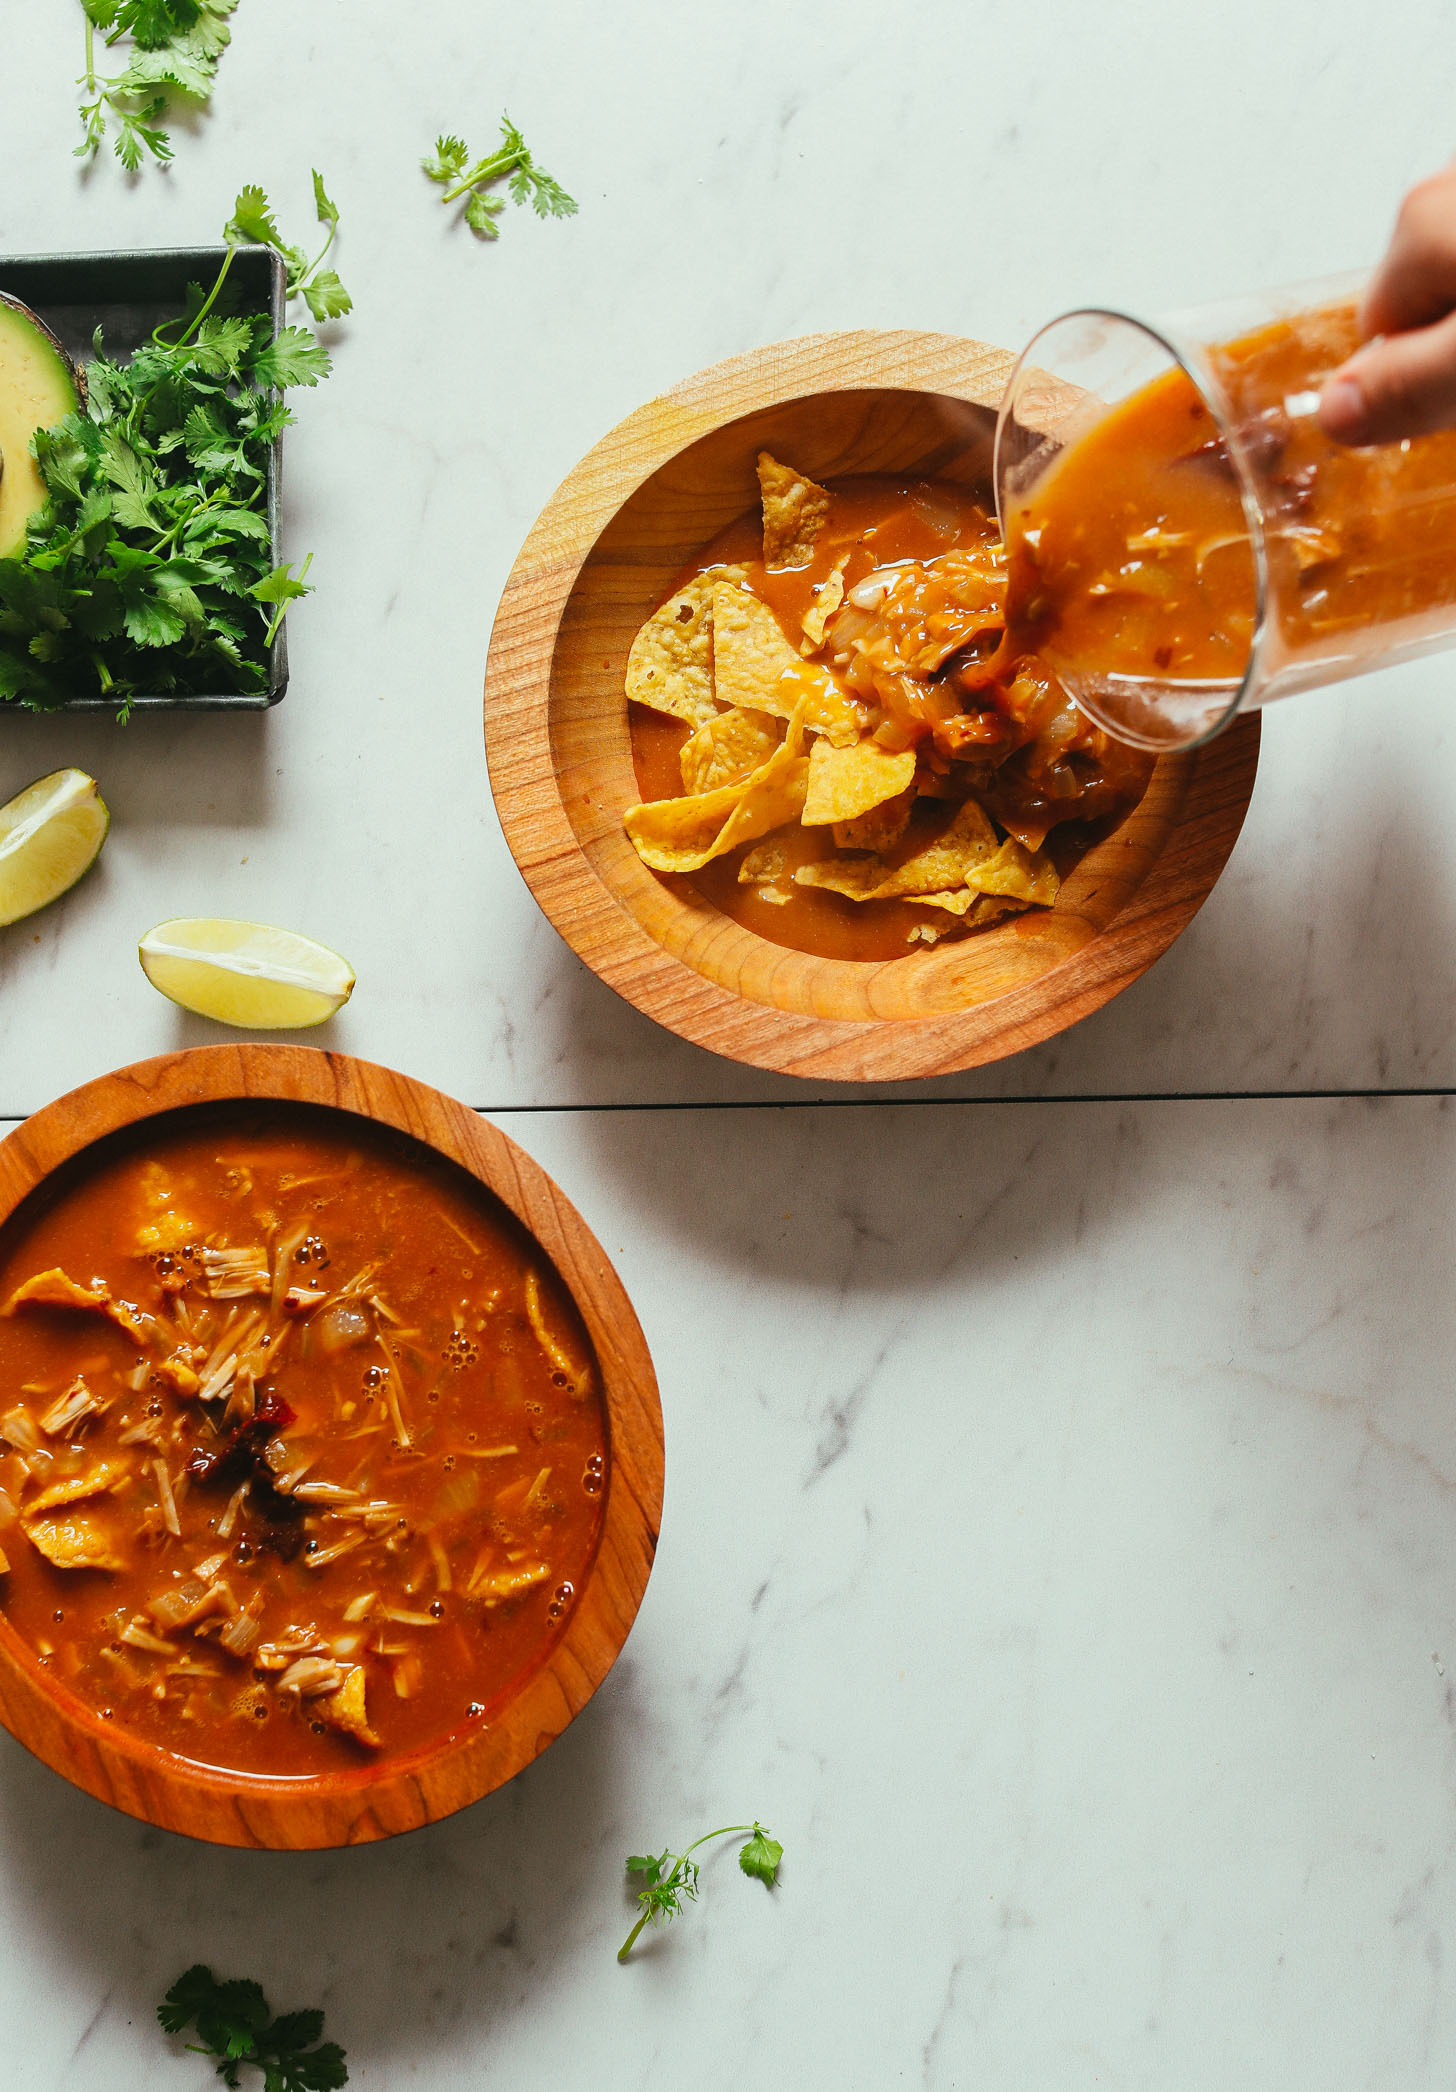 Pouring soup over tortilla chips for Vegan Tortilla Soup with Jacfruit